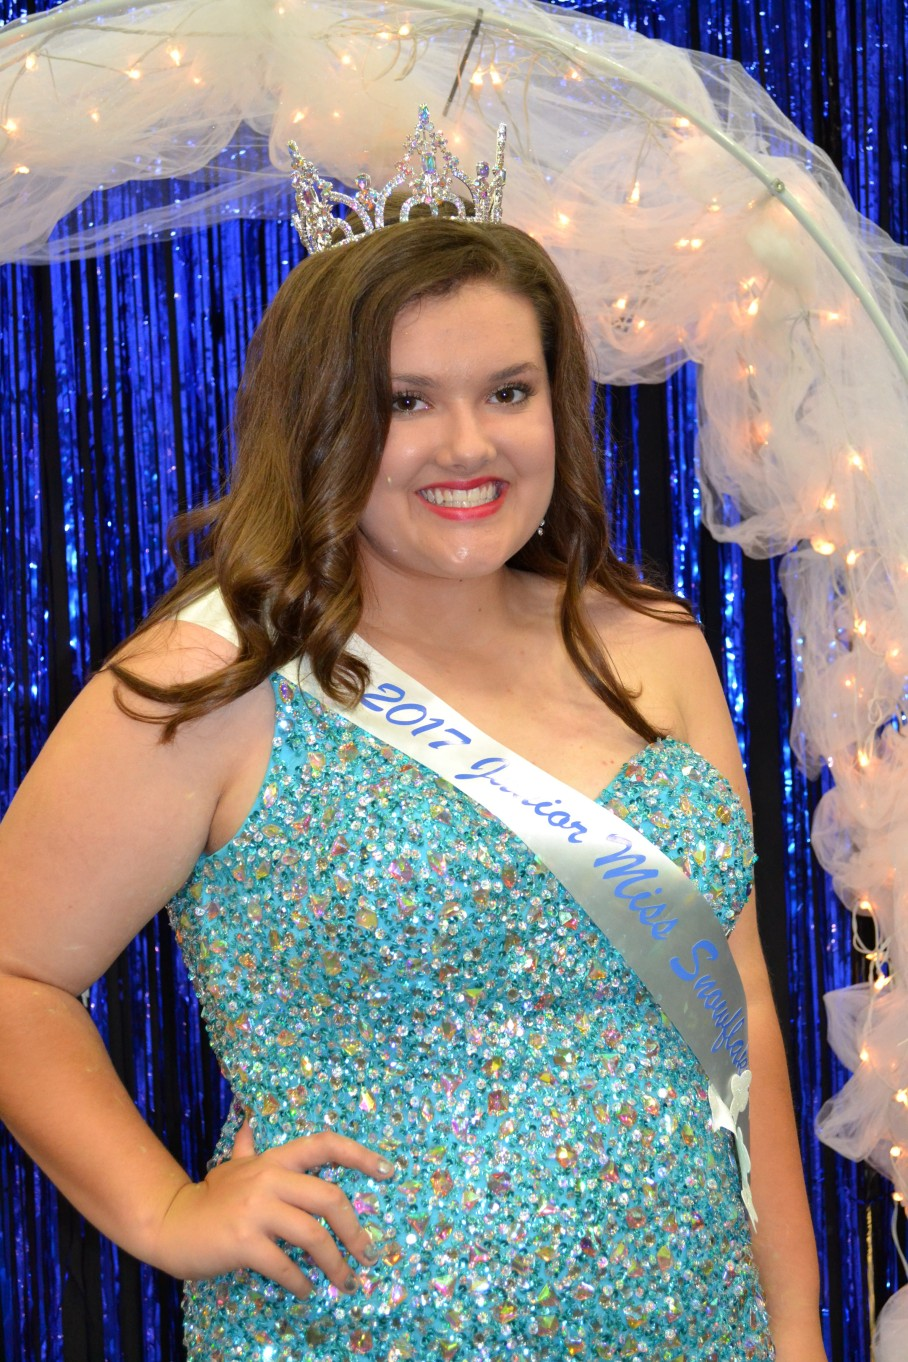 Junior Miss Snowflake Claire Williams